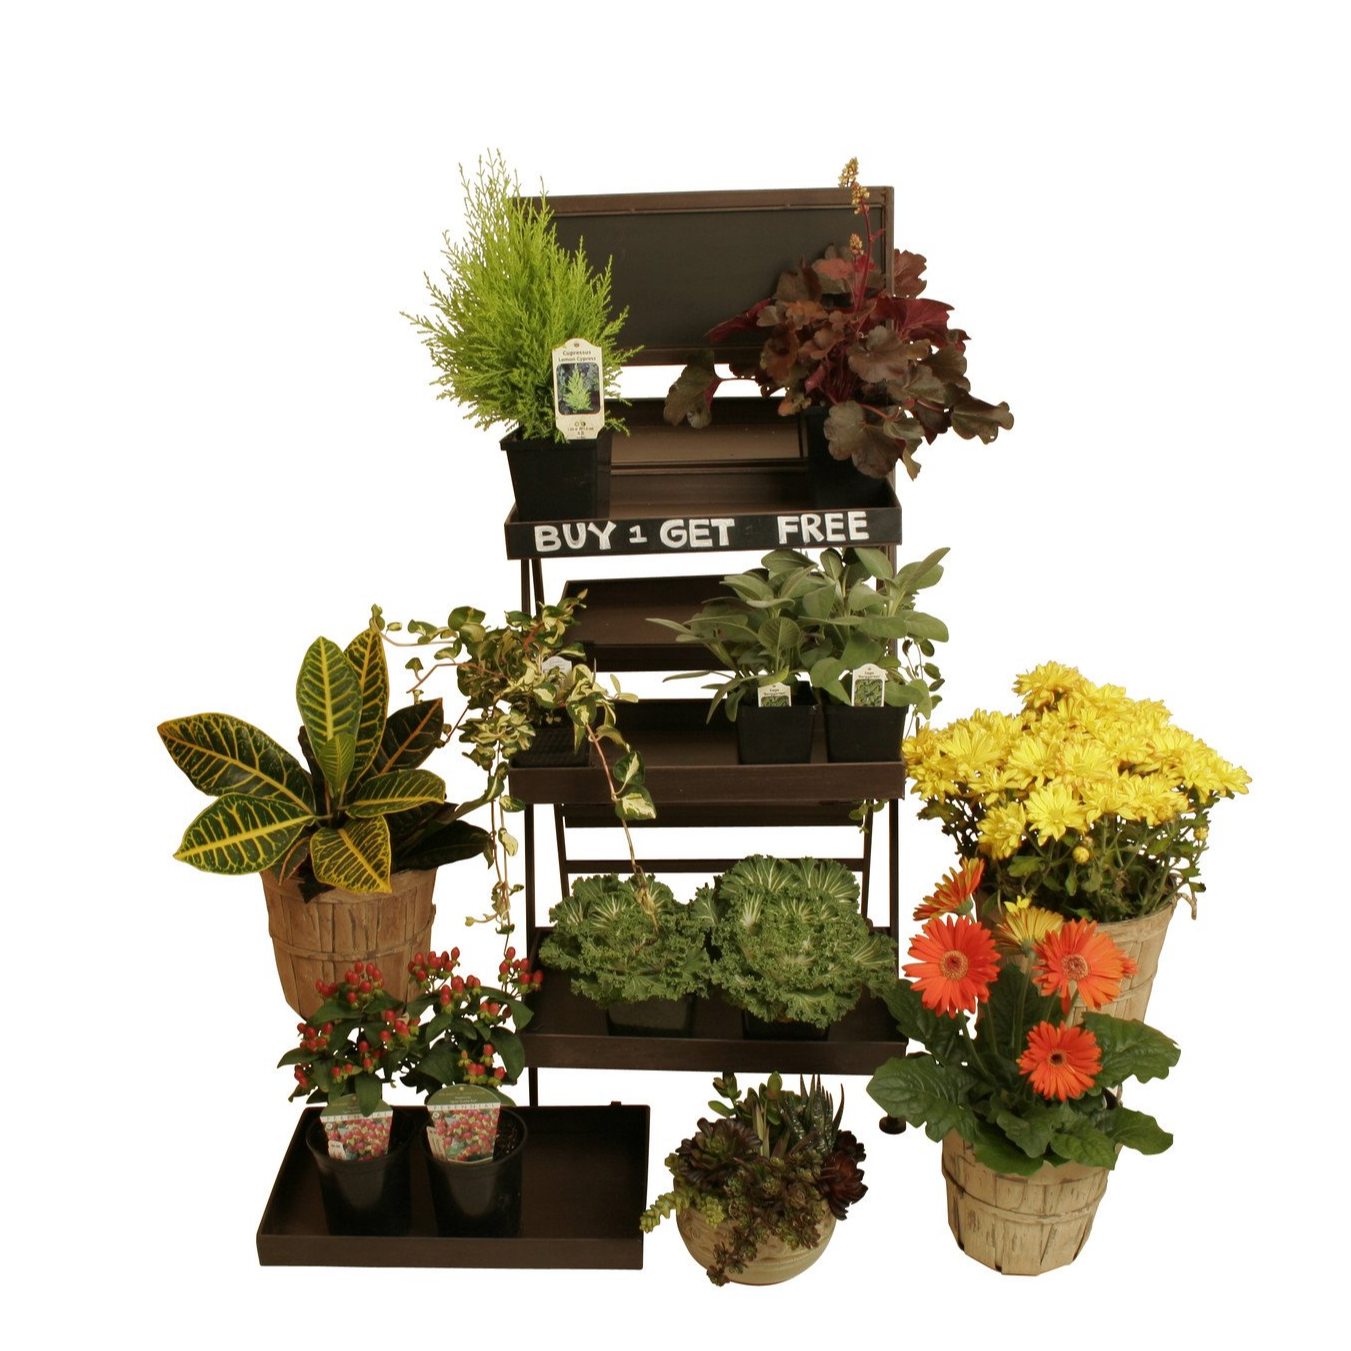 Multi-Tiered Folding Display Ladder w/ Chalkboard (3 and 5 tier options available)